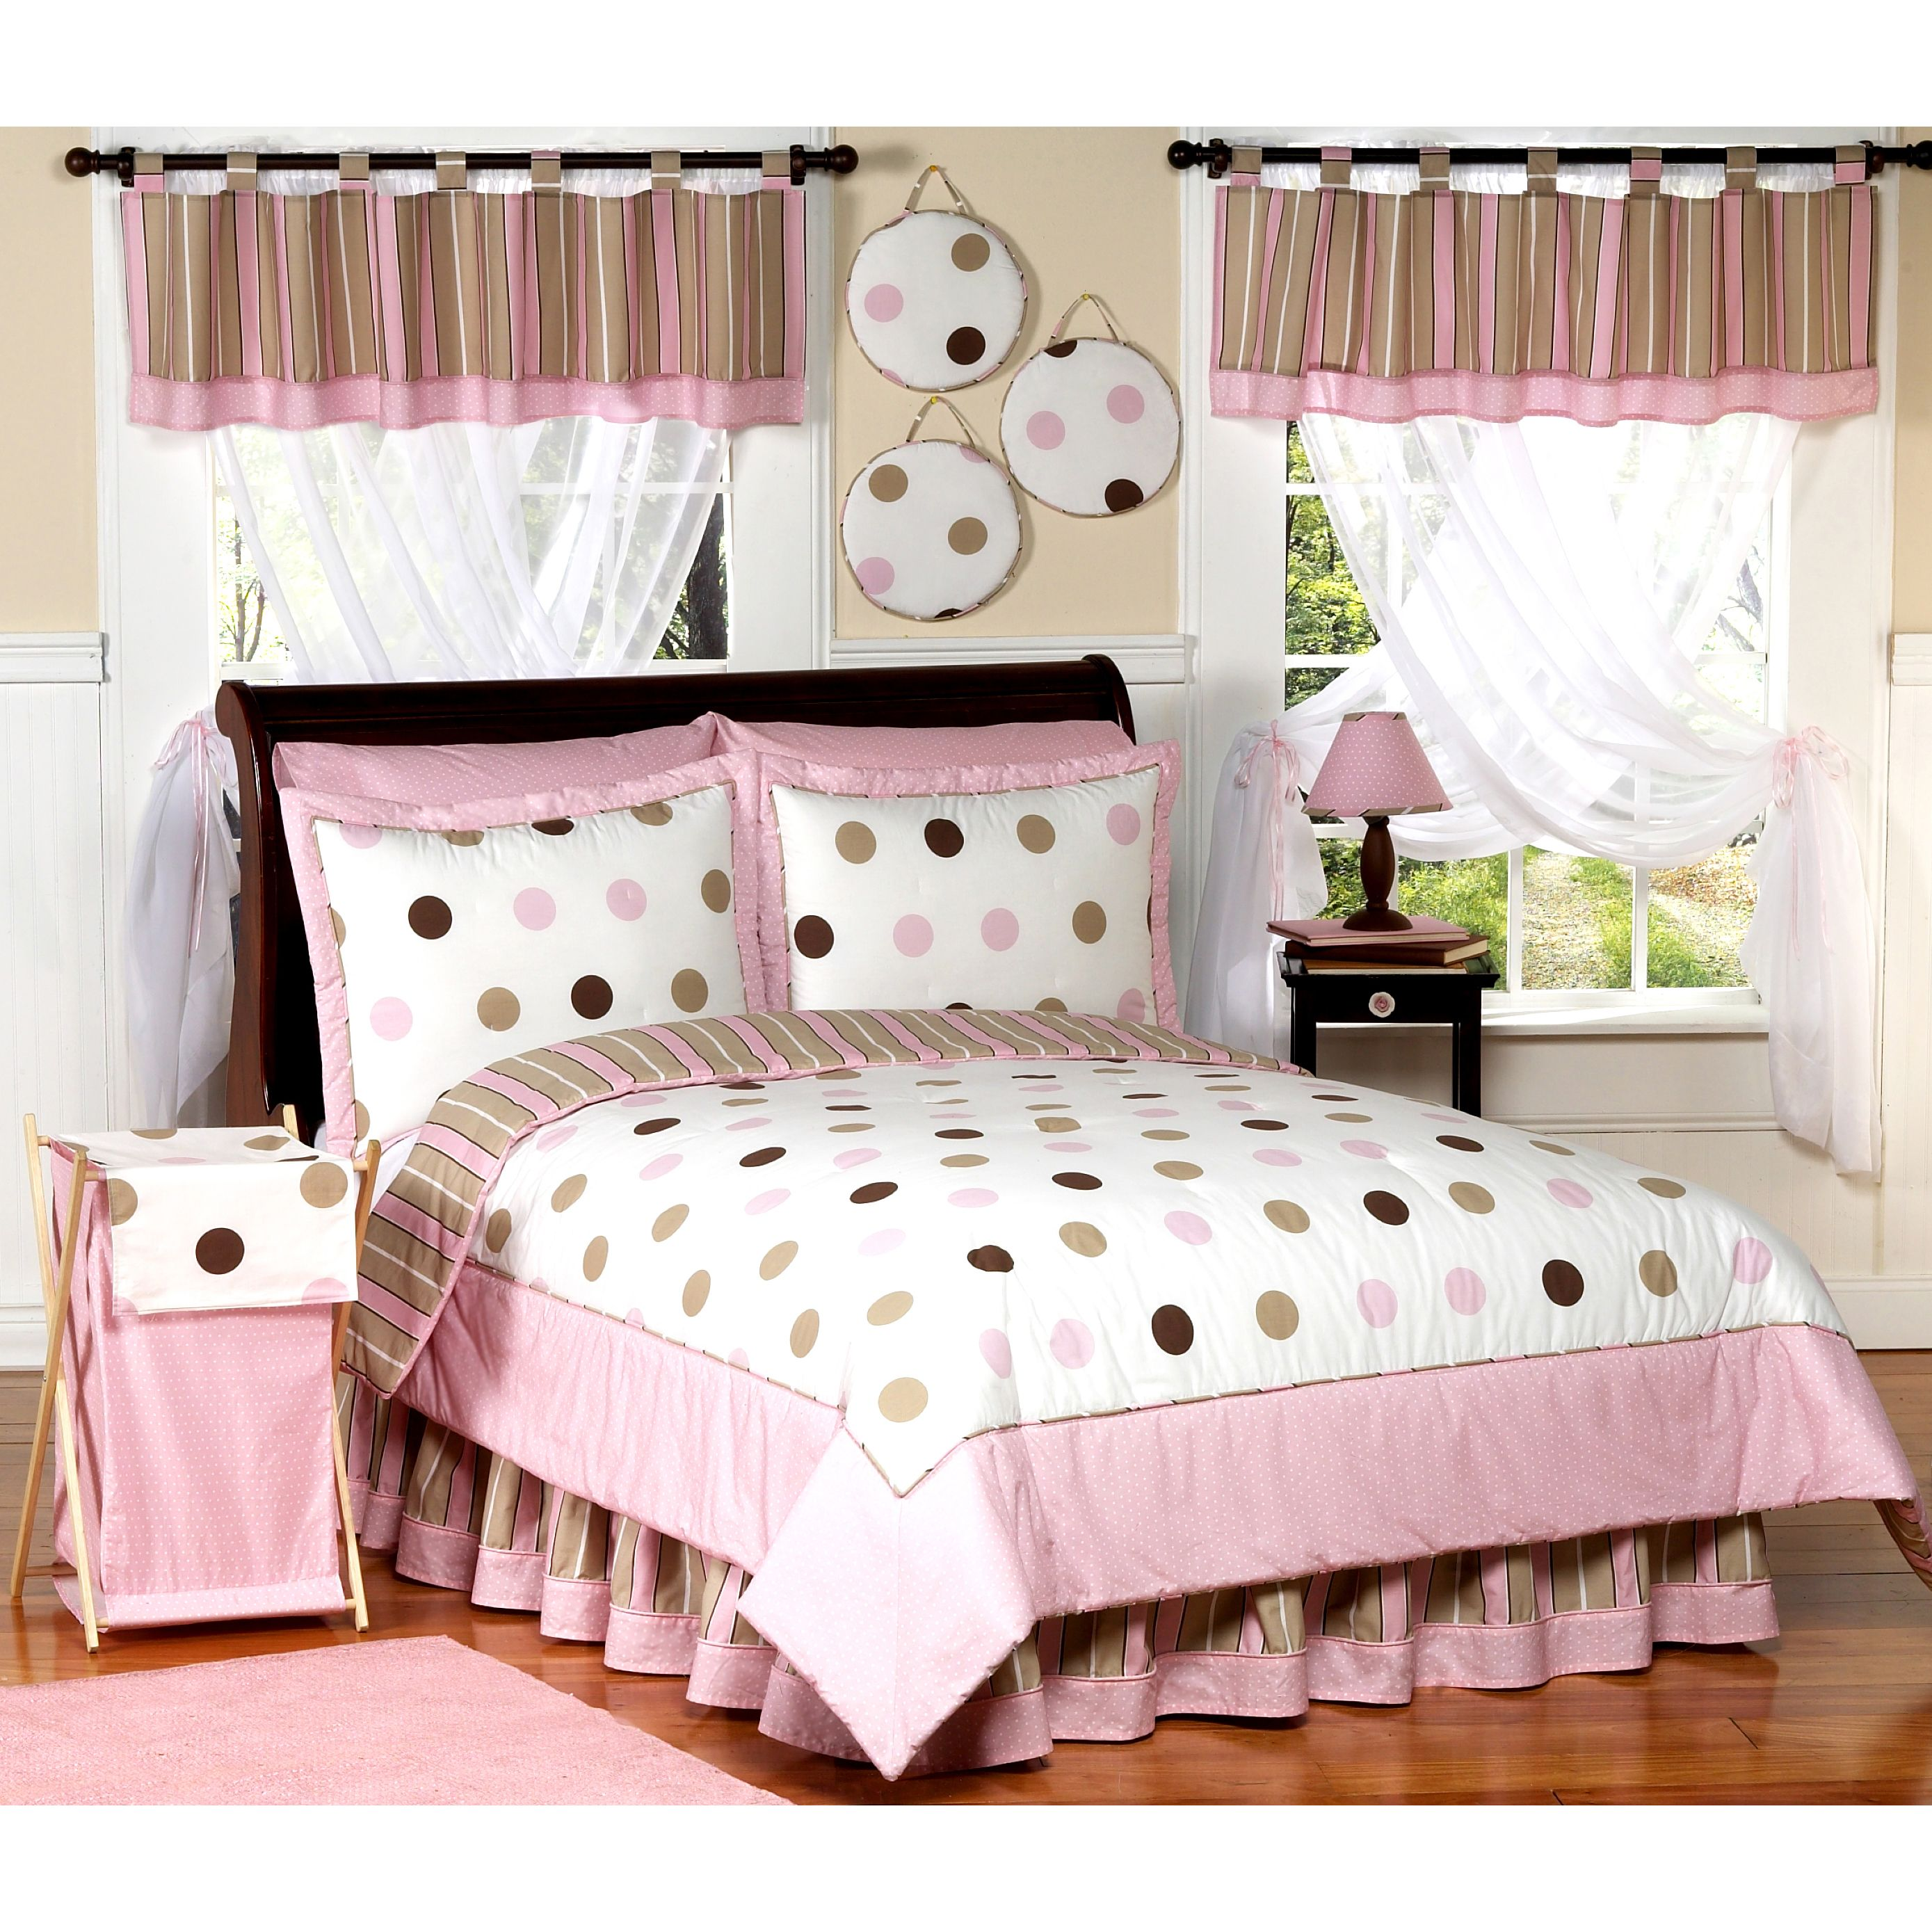 Pink And Brown Girls Room Ideas